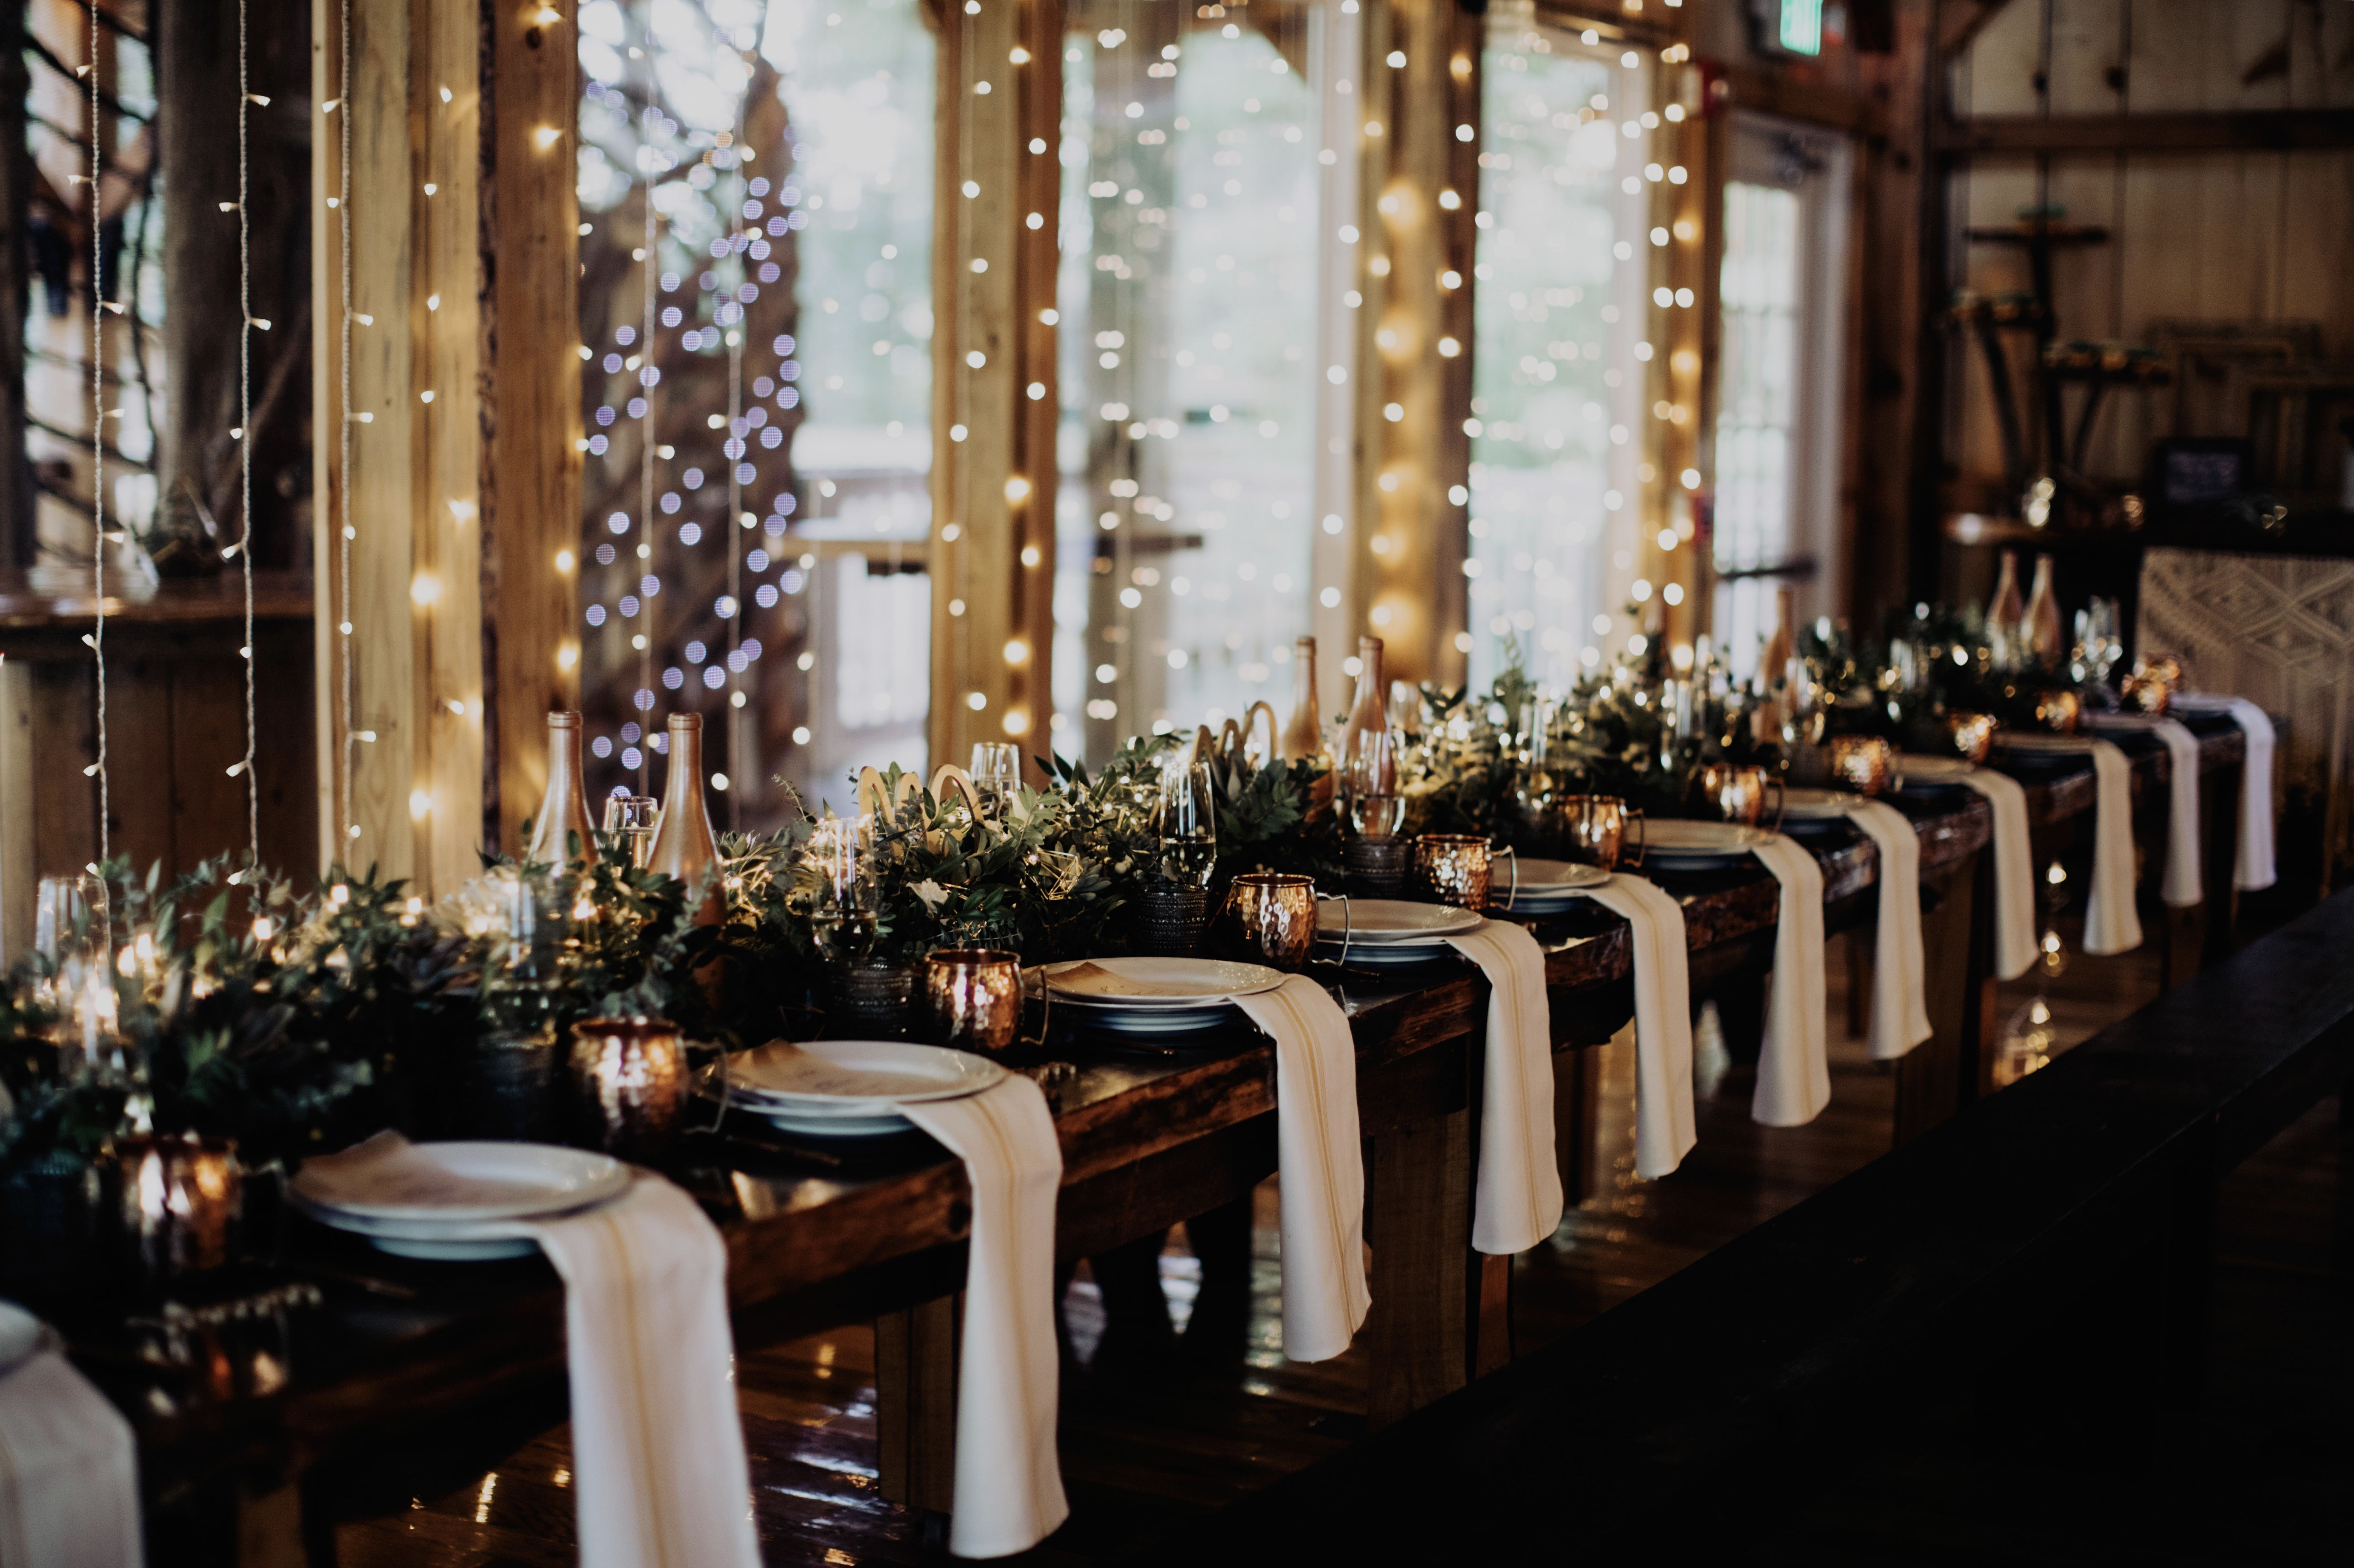 Wedding Banquet Place Setting At The Grand Barn At The Mohicans Event Planning Styling Design Manna Sun Events Event Planning Fun Wedding Vintage Rentals